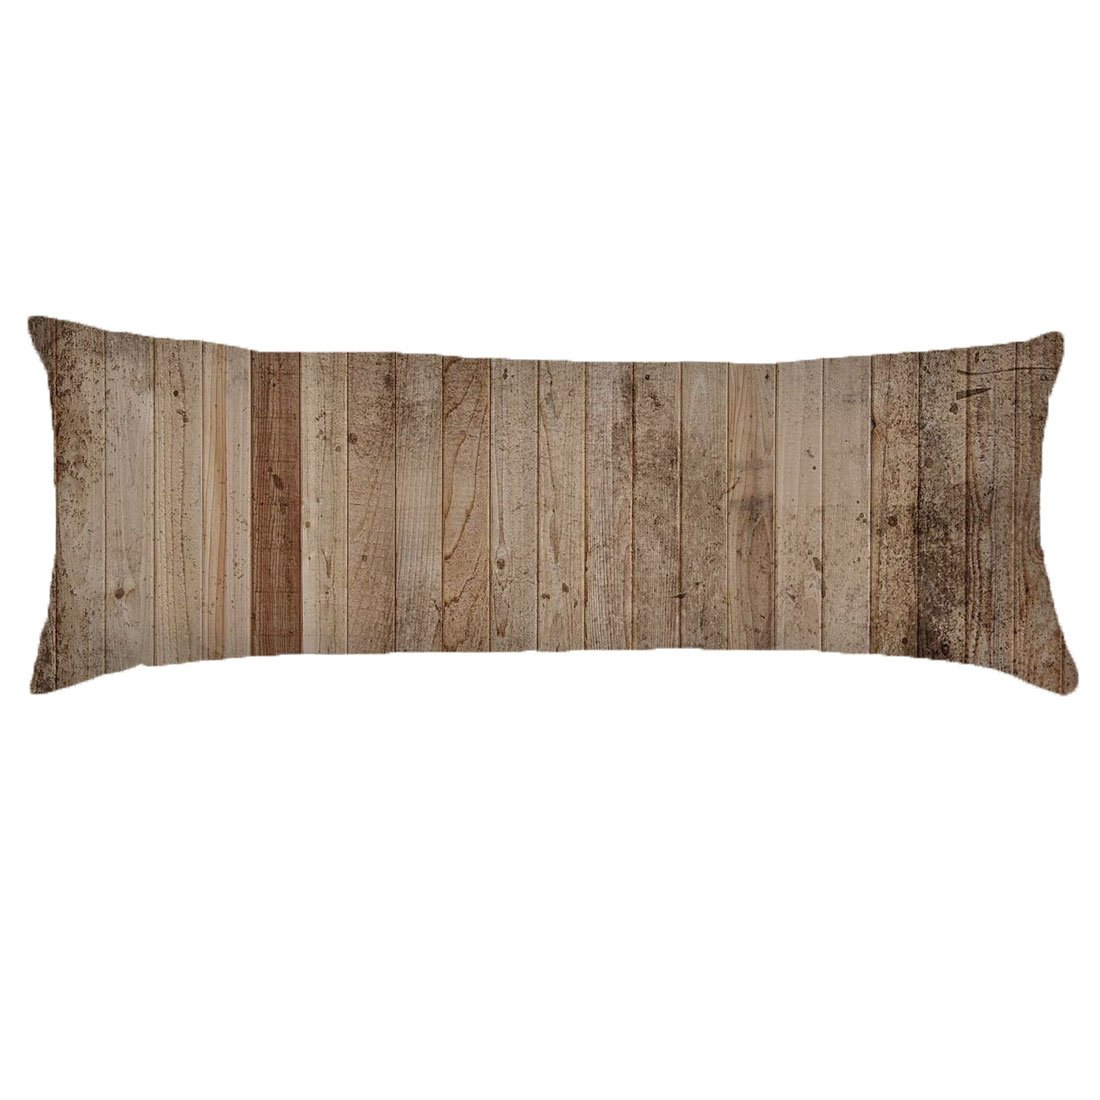 Alicia Haines Wood Body Pillow Cover Decorative Pillowcase With Double Sided 20''x54''